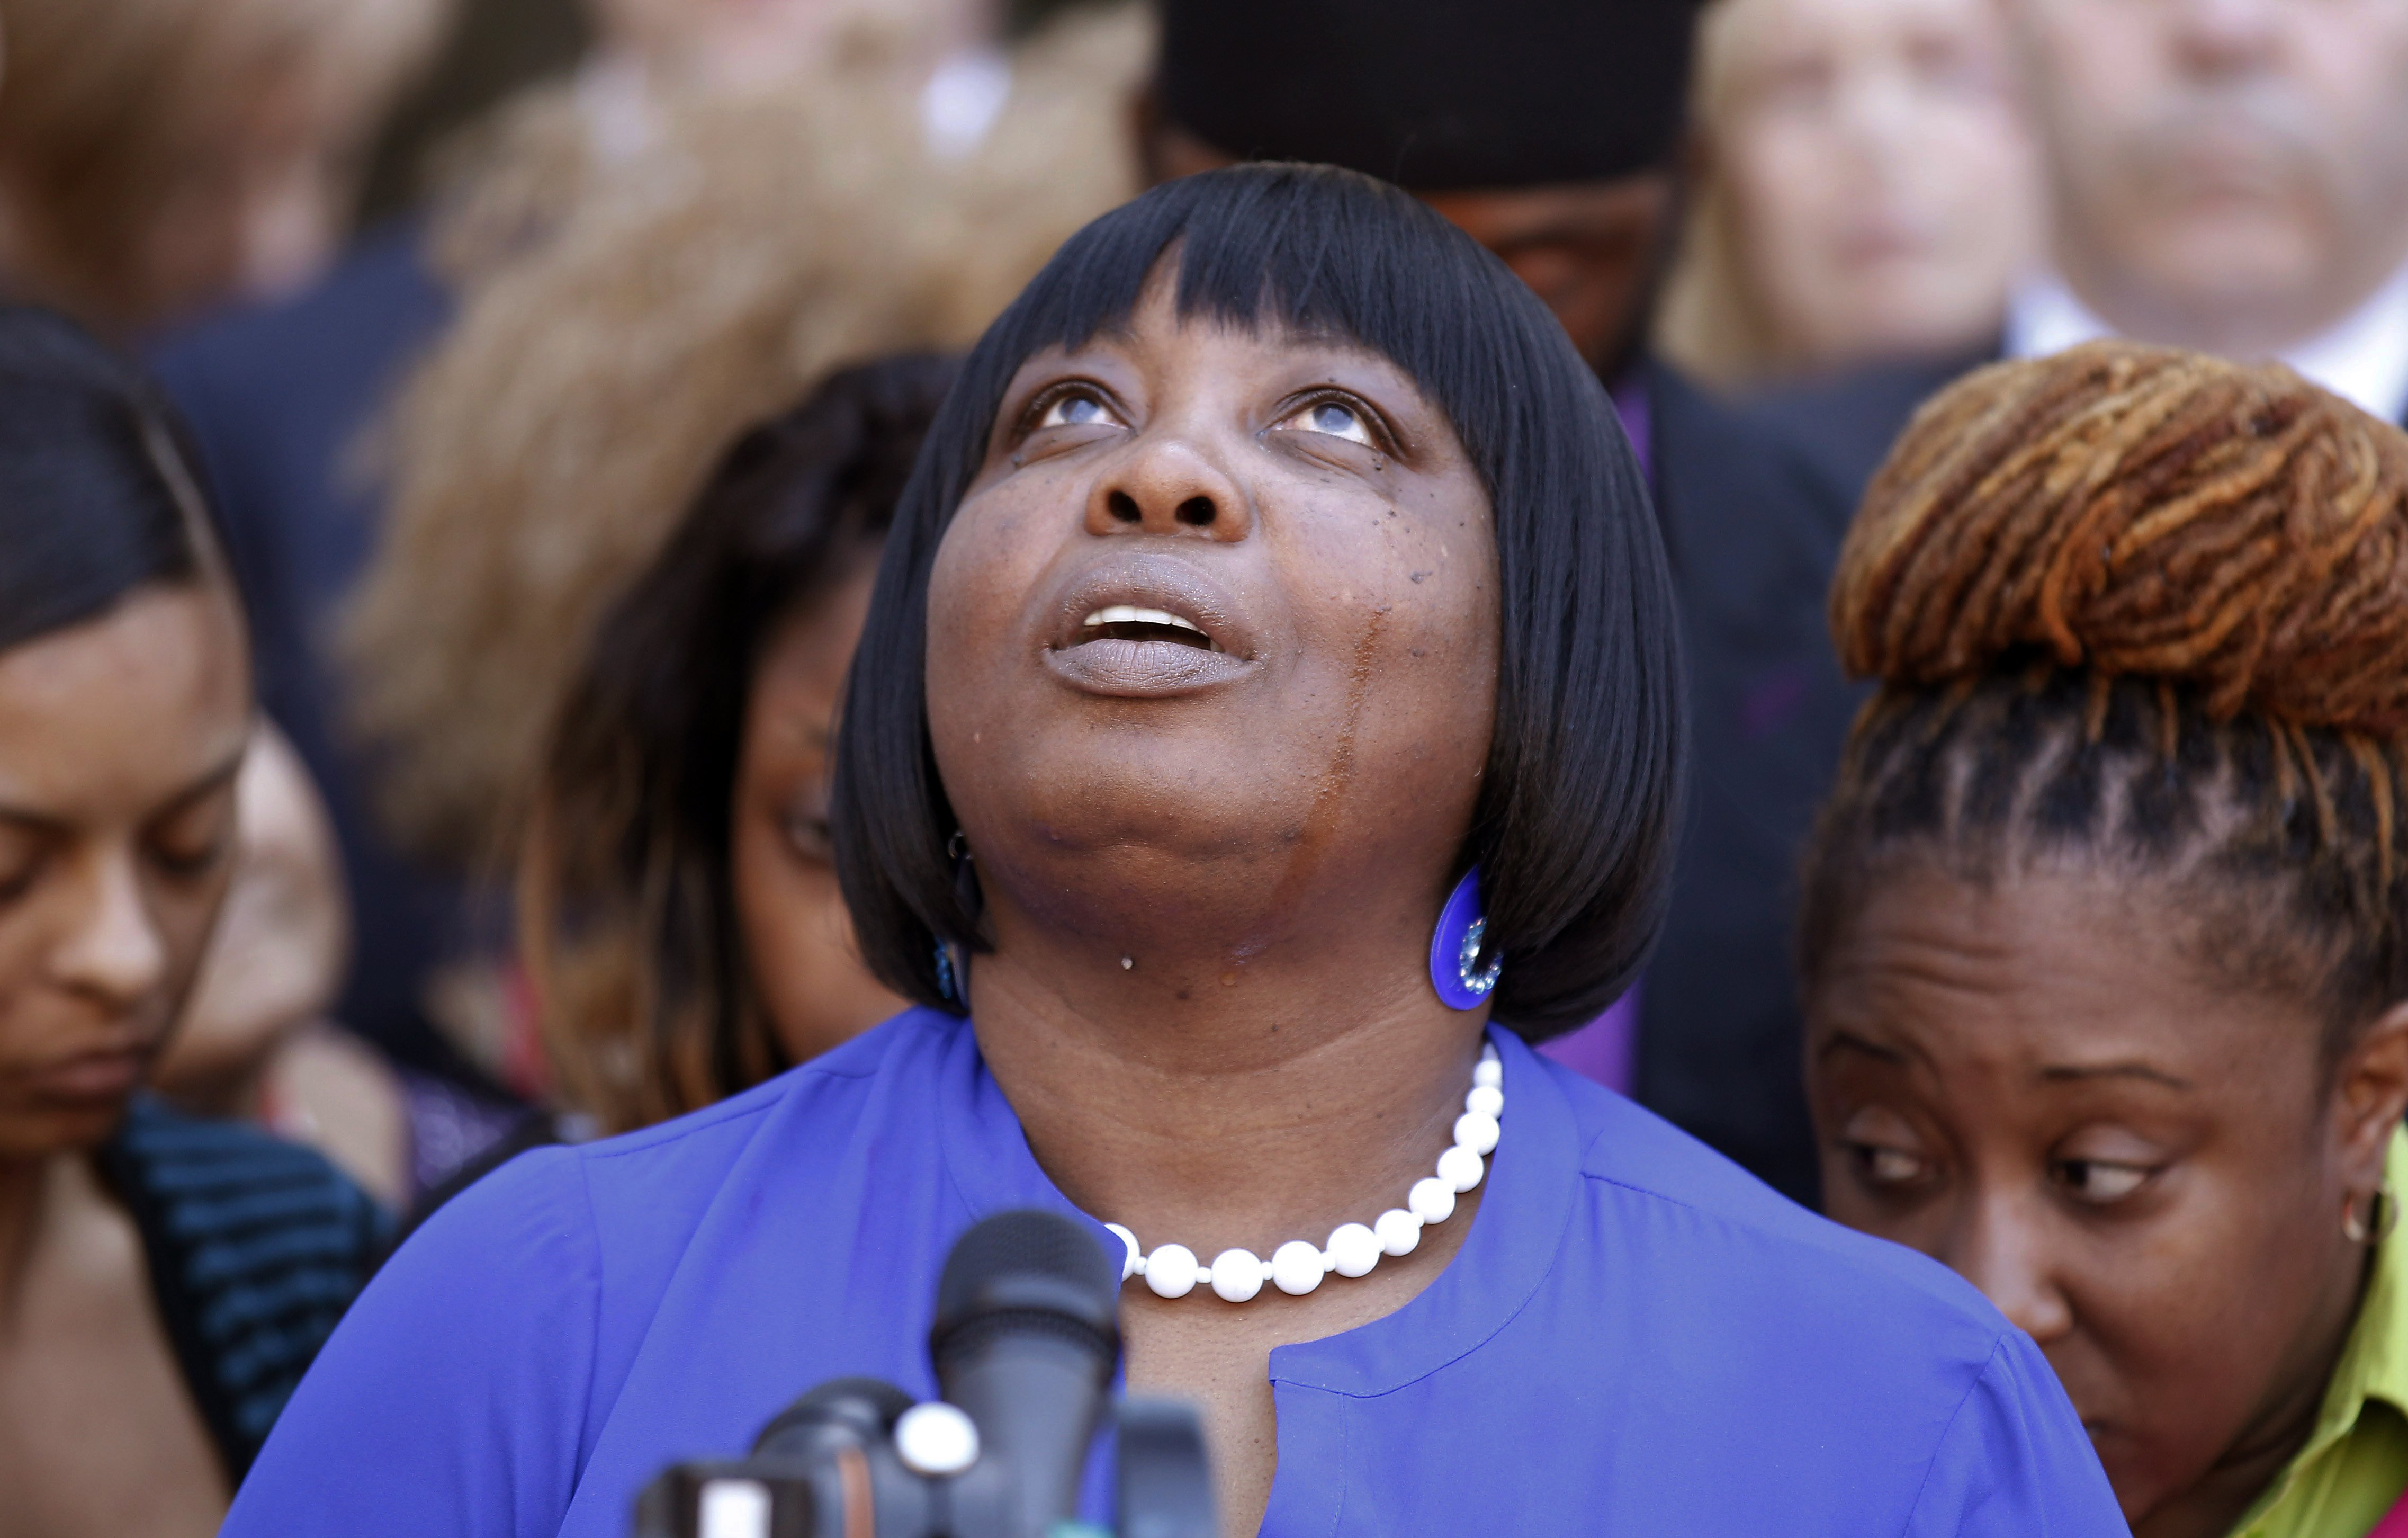 Ursula Ward, mother of shooting victim Odin Lloyd, looks up to the heavens as she talks about her deceased son outside Bristol County Superior Court on April 15, 2015, in Fall River, Mass., after former New England Patriots football player Aaron Hernandez was found guilty of murder in the shooting death of Odin Lloyd.